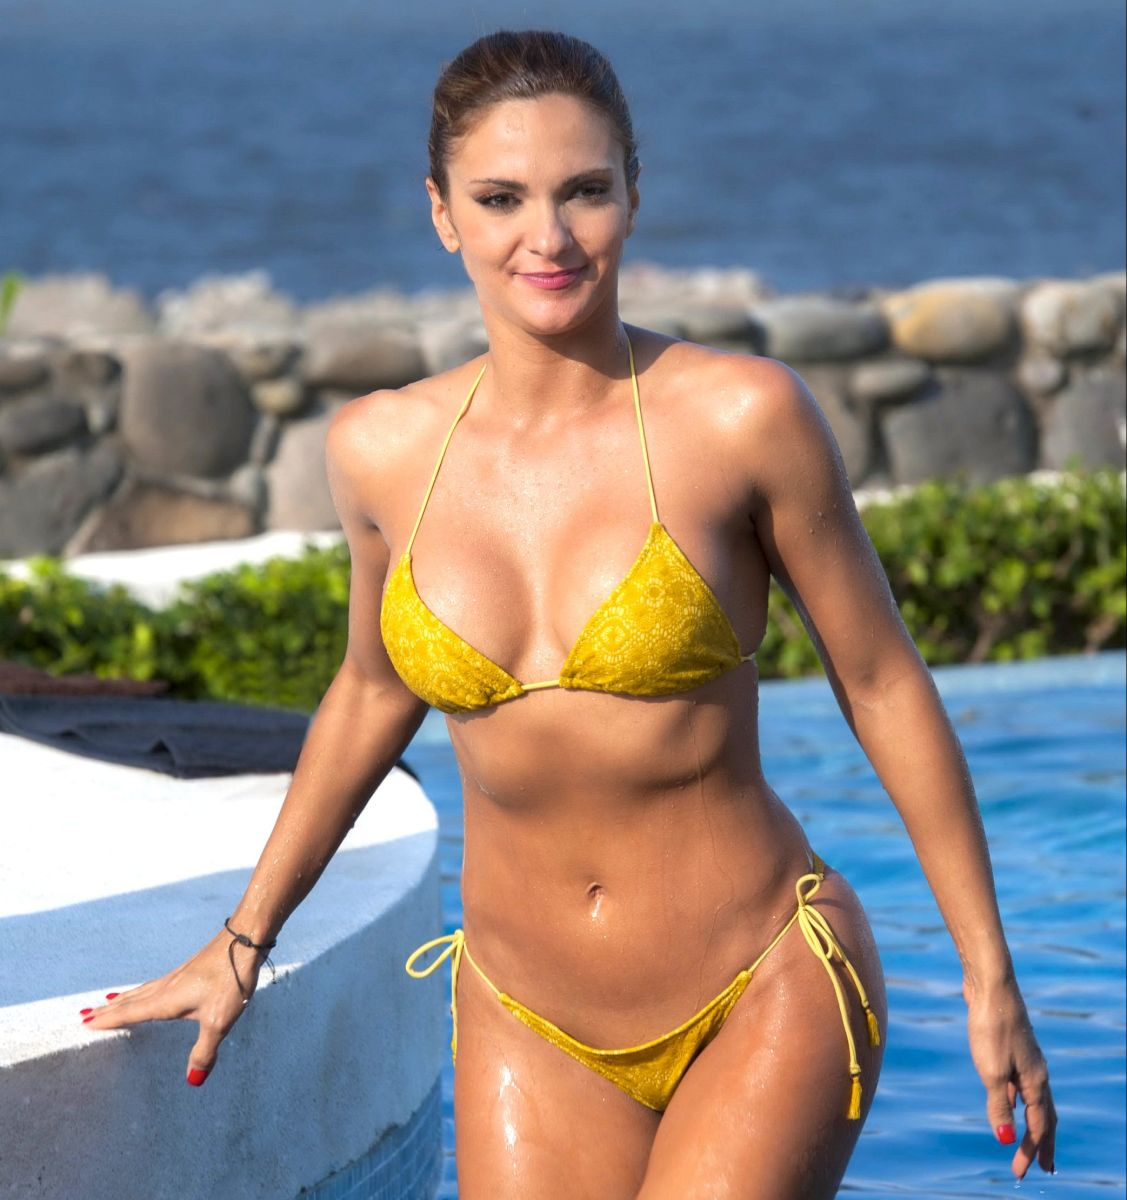 Mariana Seoane unleashes passions in a bikini in front of the mirror | The State